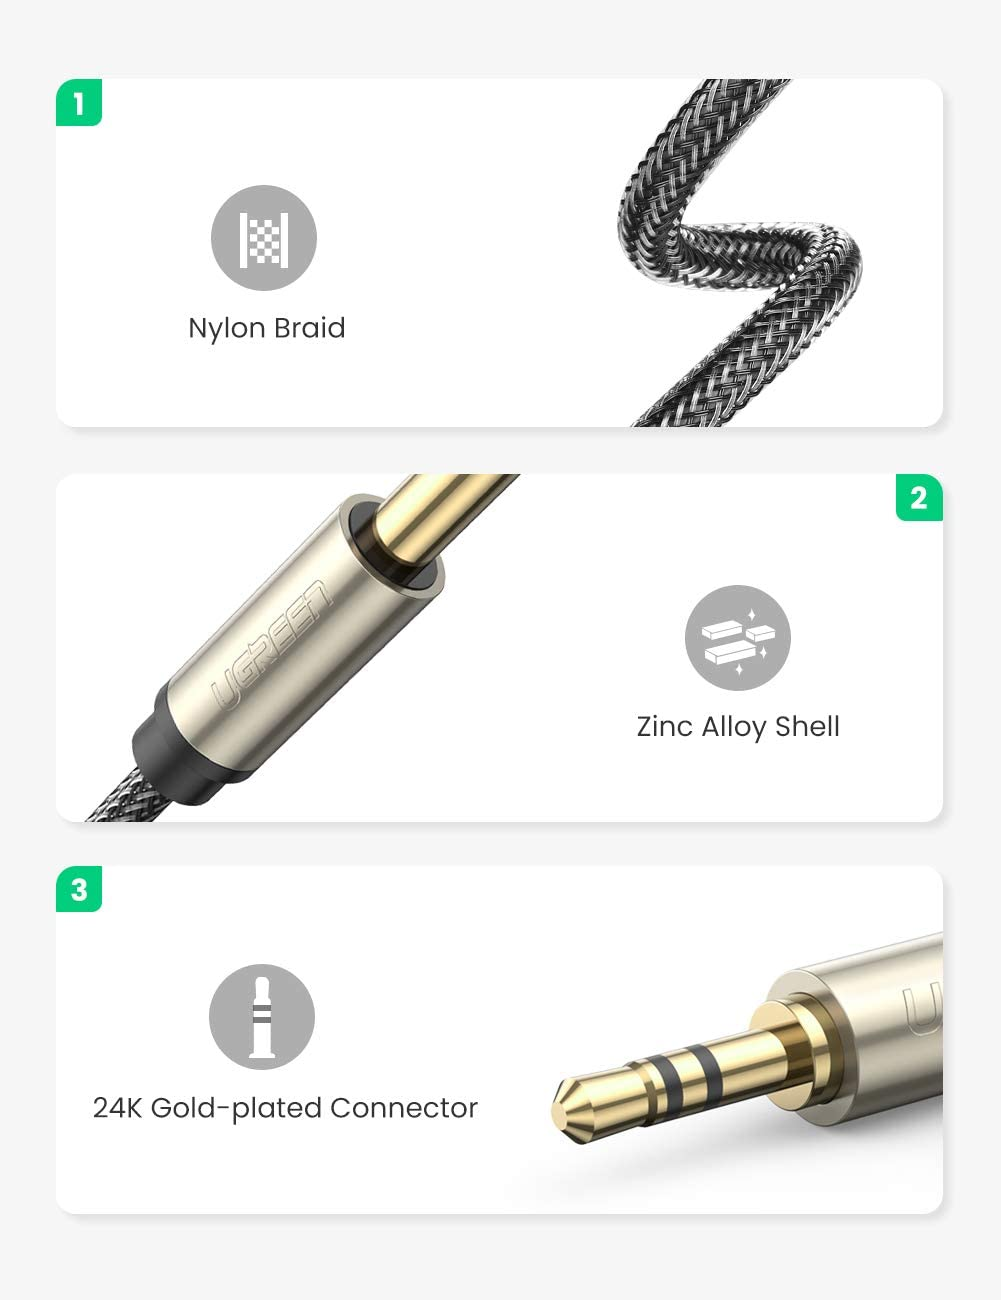 """UGREEN 6.35mm 1/4"""" Male to 3.5mm 1/8"""" Male TRS Stereo Audio Cable with Zinc Alloy Housing and Nylon Braid Compatible for iPod, Laptop,Home Theater Devices, and Amplifiers, 15FT: Home Audio & Theater"""